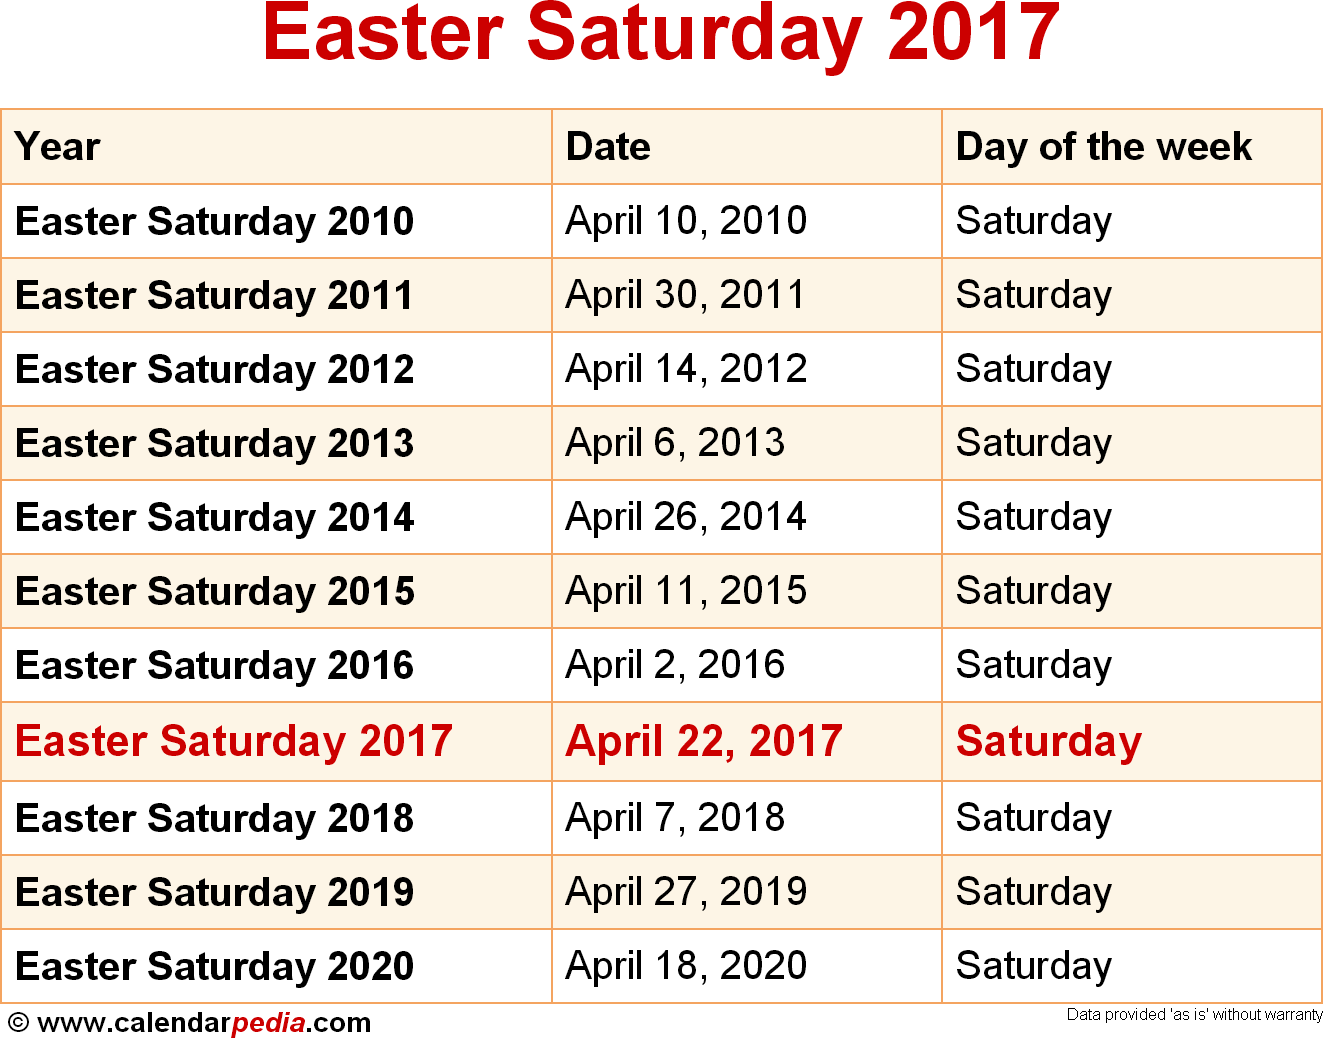 When is Easter Saturday 2017 & 2018? Dates of Easter Saturday